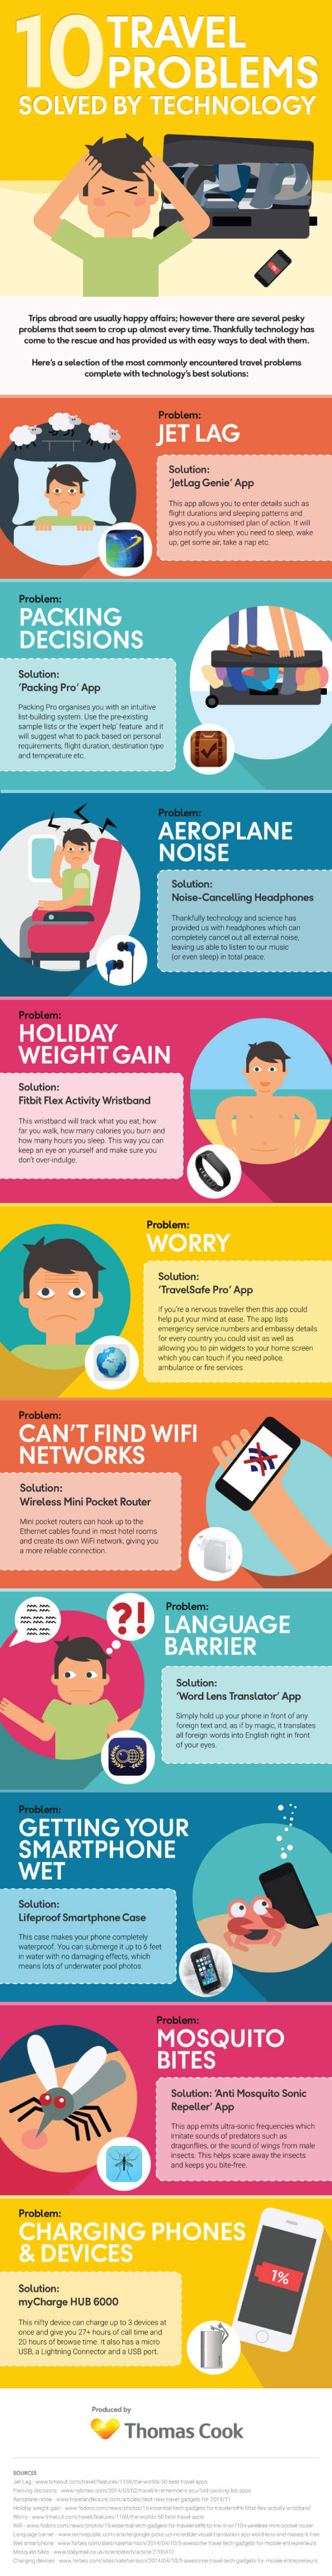 Image titled 10 Travel Problems That You Will Solve with Technology